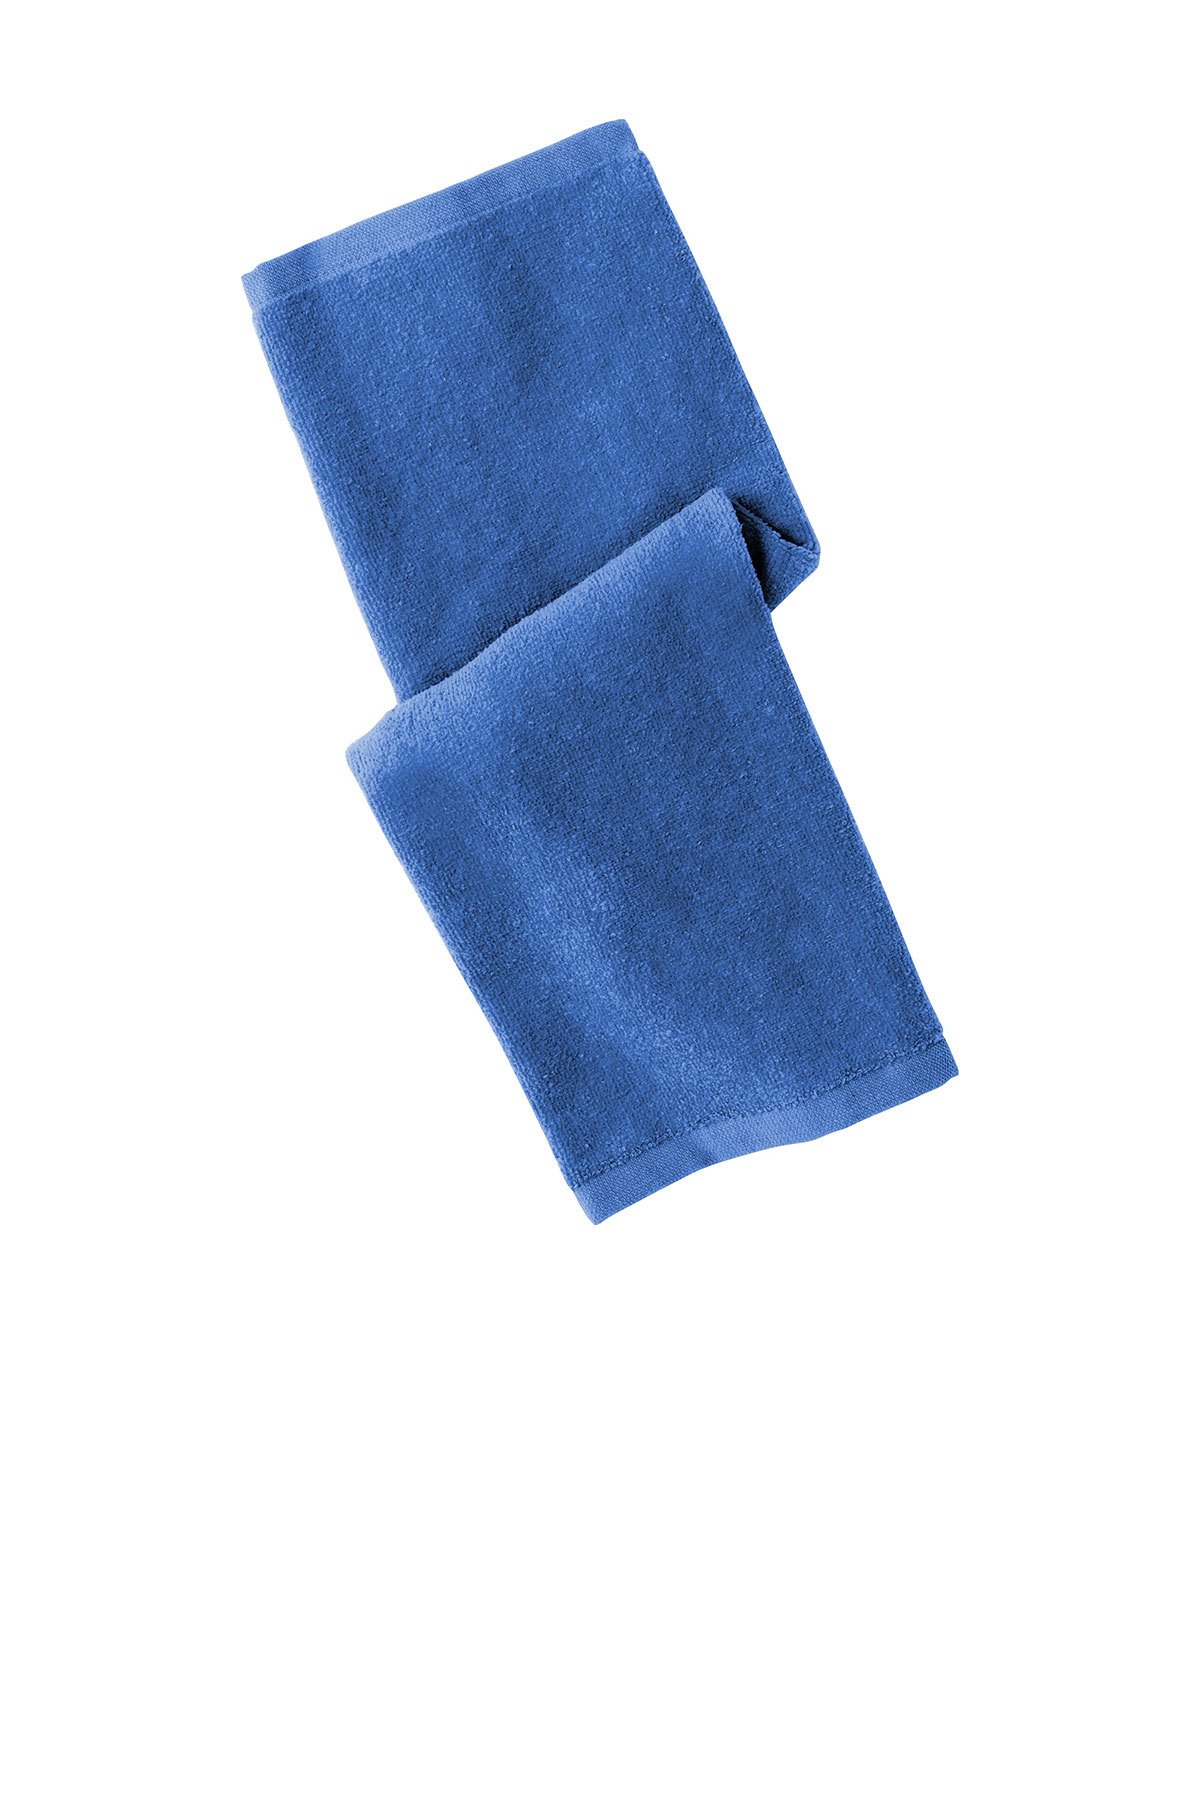 Port Authority PT390 - Hemmed Towel